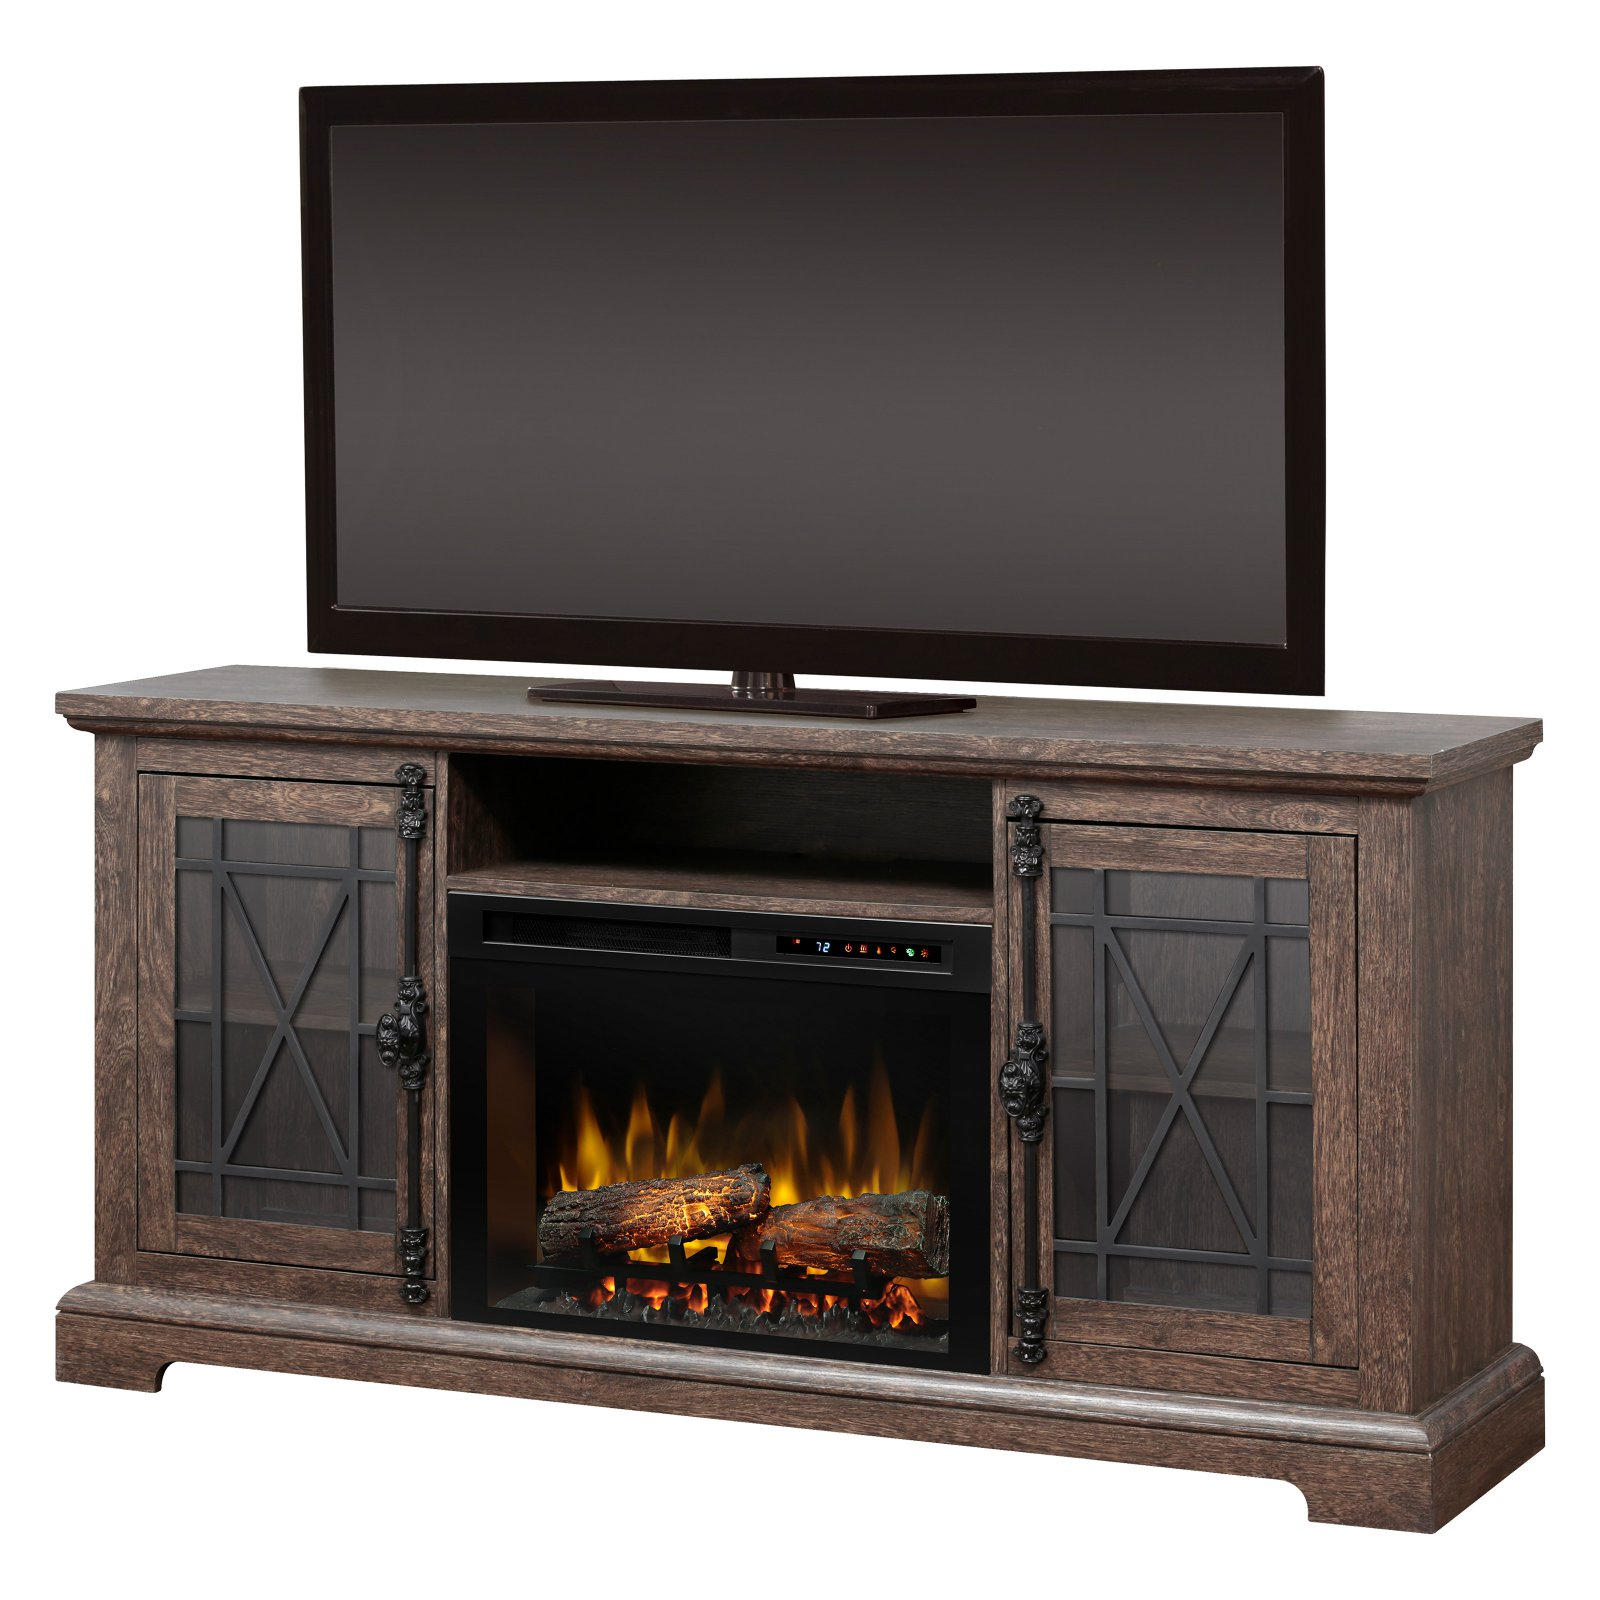 "Dimplex Natalie Media Console Electric Fireplace With Logs for TVs up to 65"", Elm Brown"